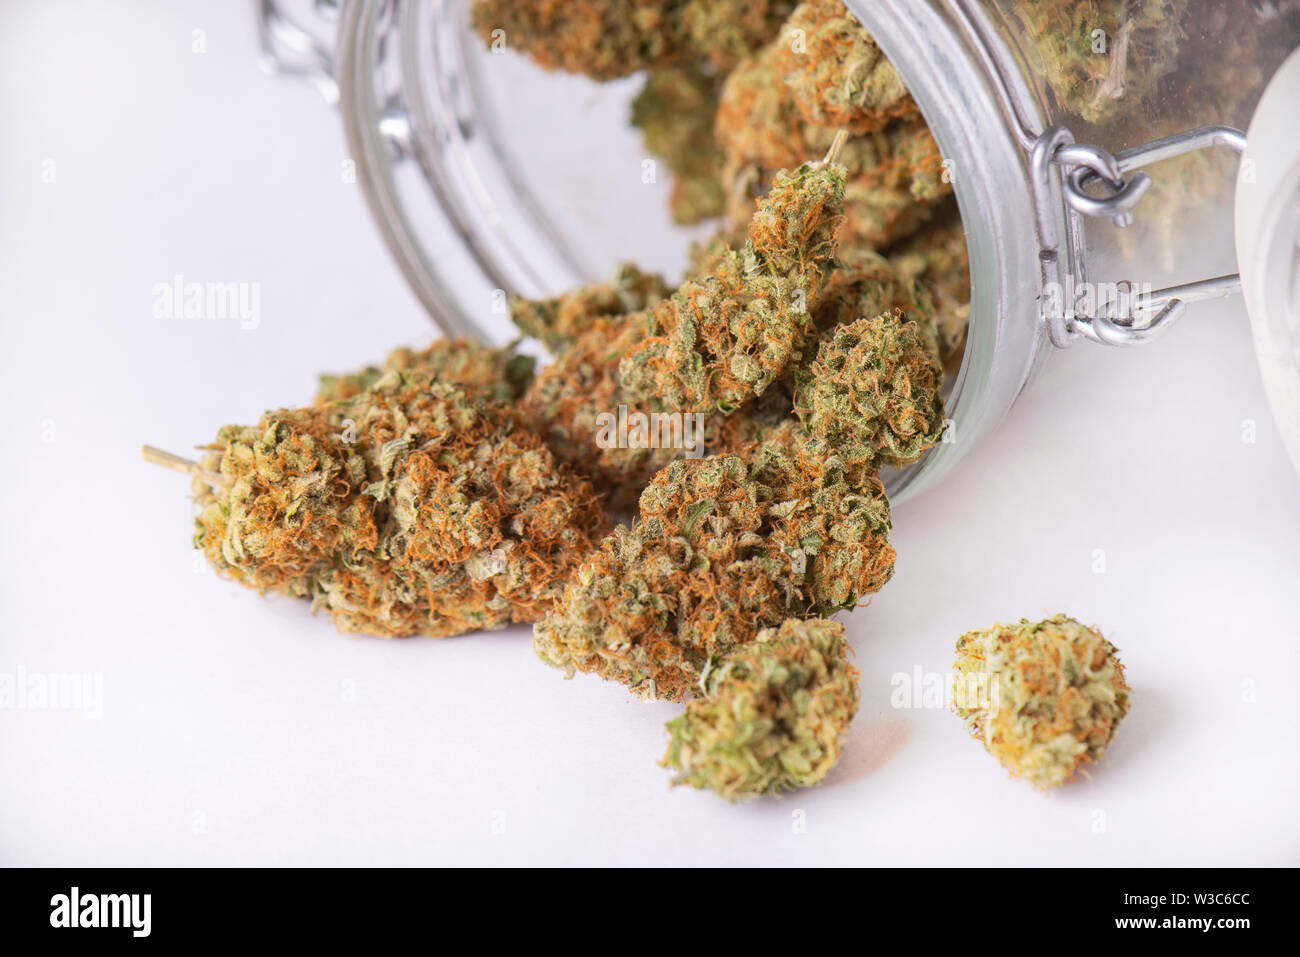 Detail of cannabis buds on clear glass jar isolated on white - medical marijuana dispensary concept Stock Photo